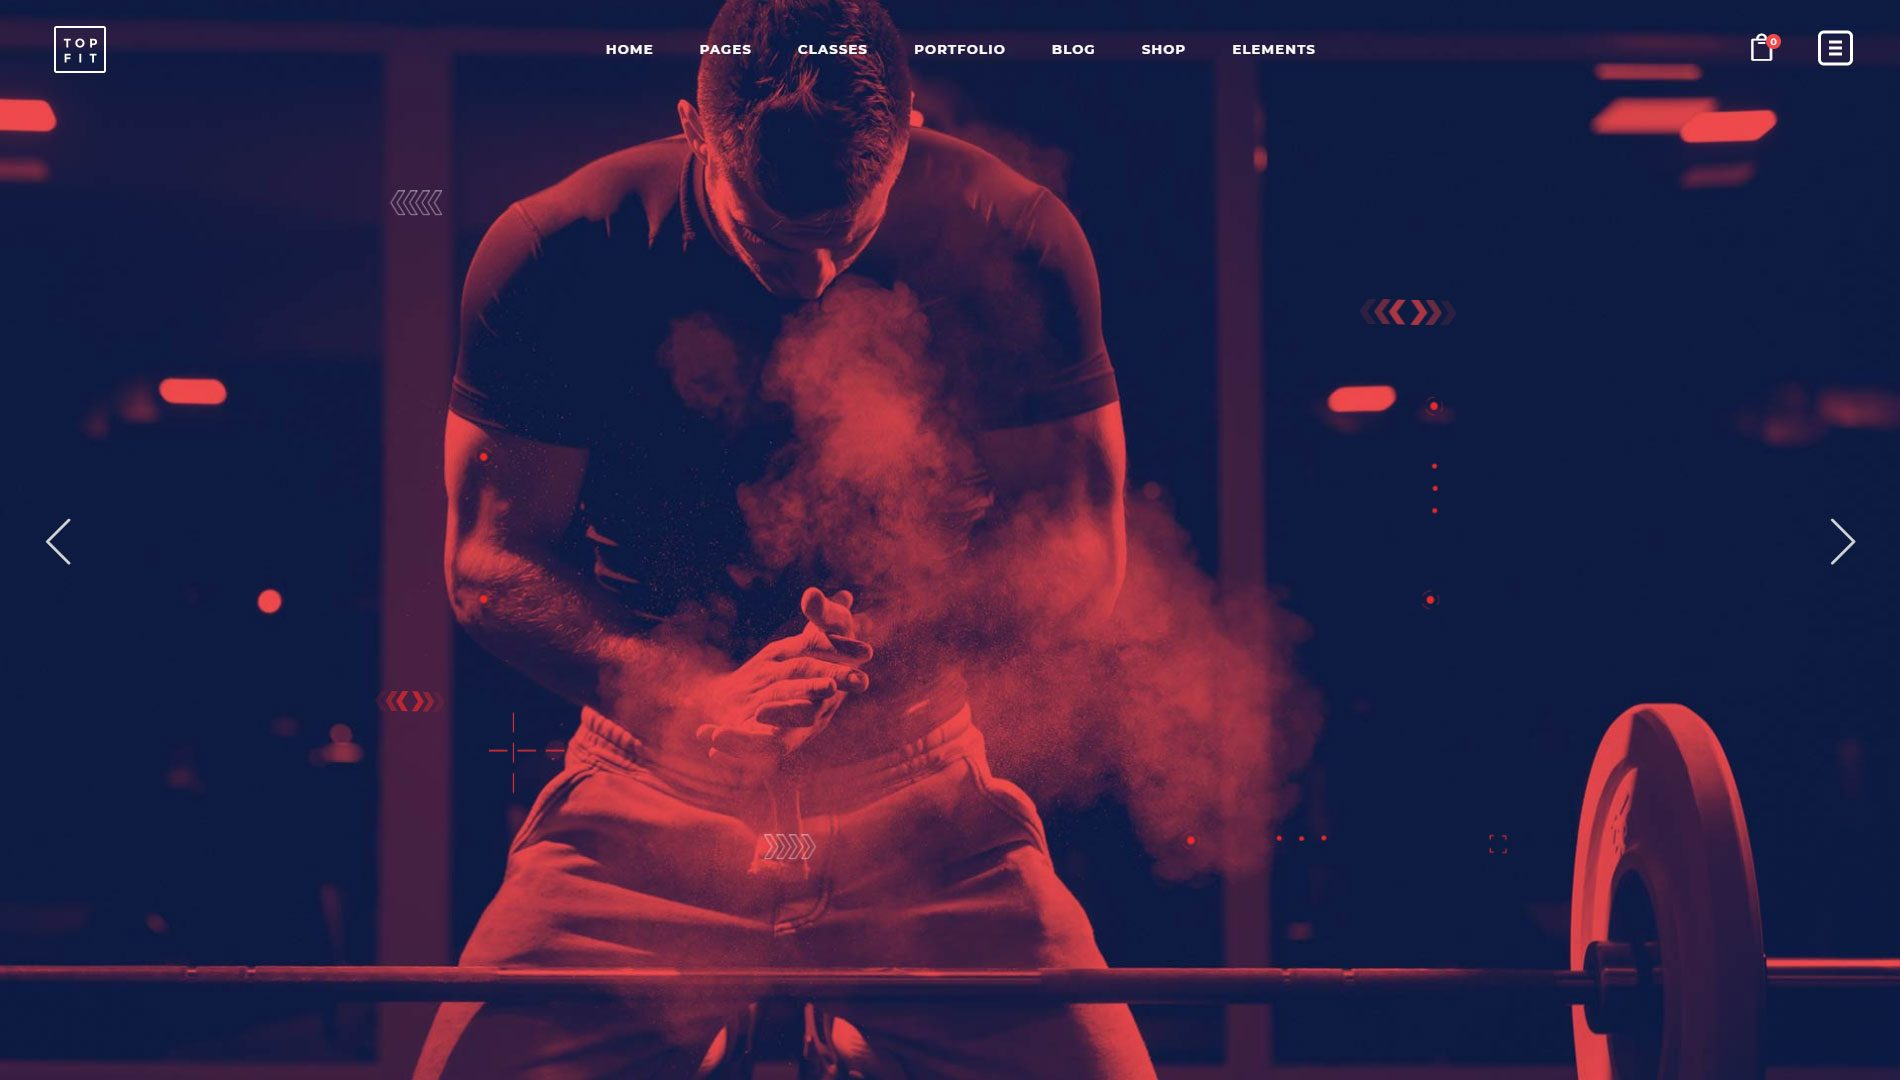 Website Designs For Fitness Studios, Gyms – 20+ Websites & Features